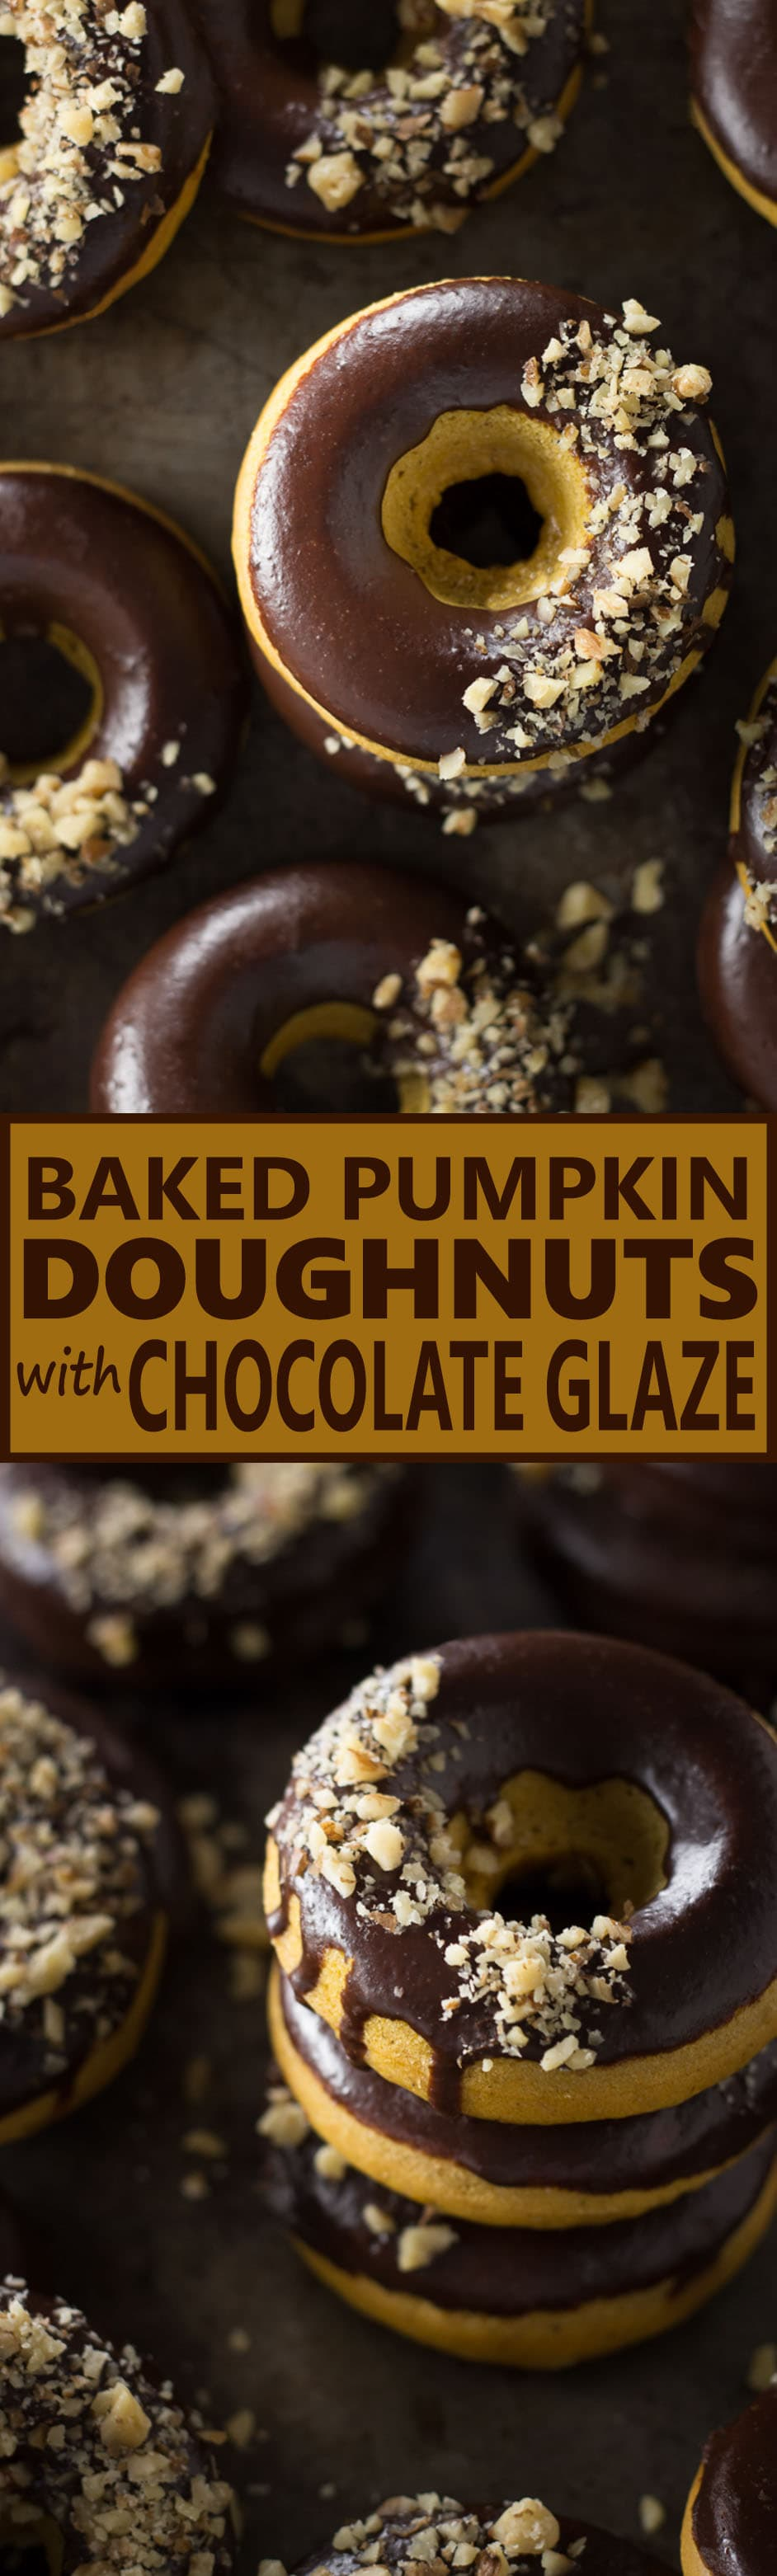 Baked Pumpkin Doughnuts with Chocolate Glaze